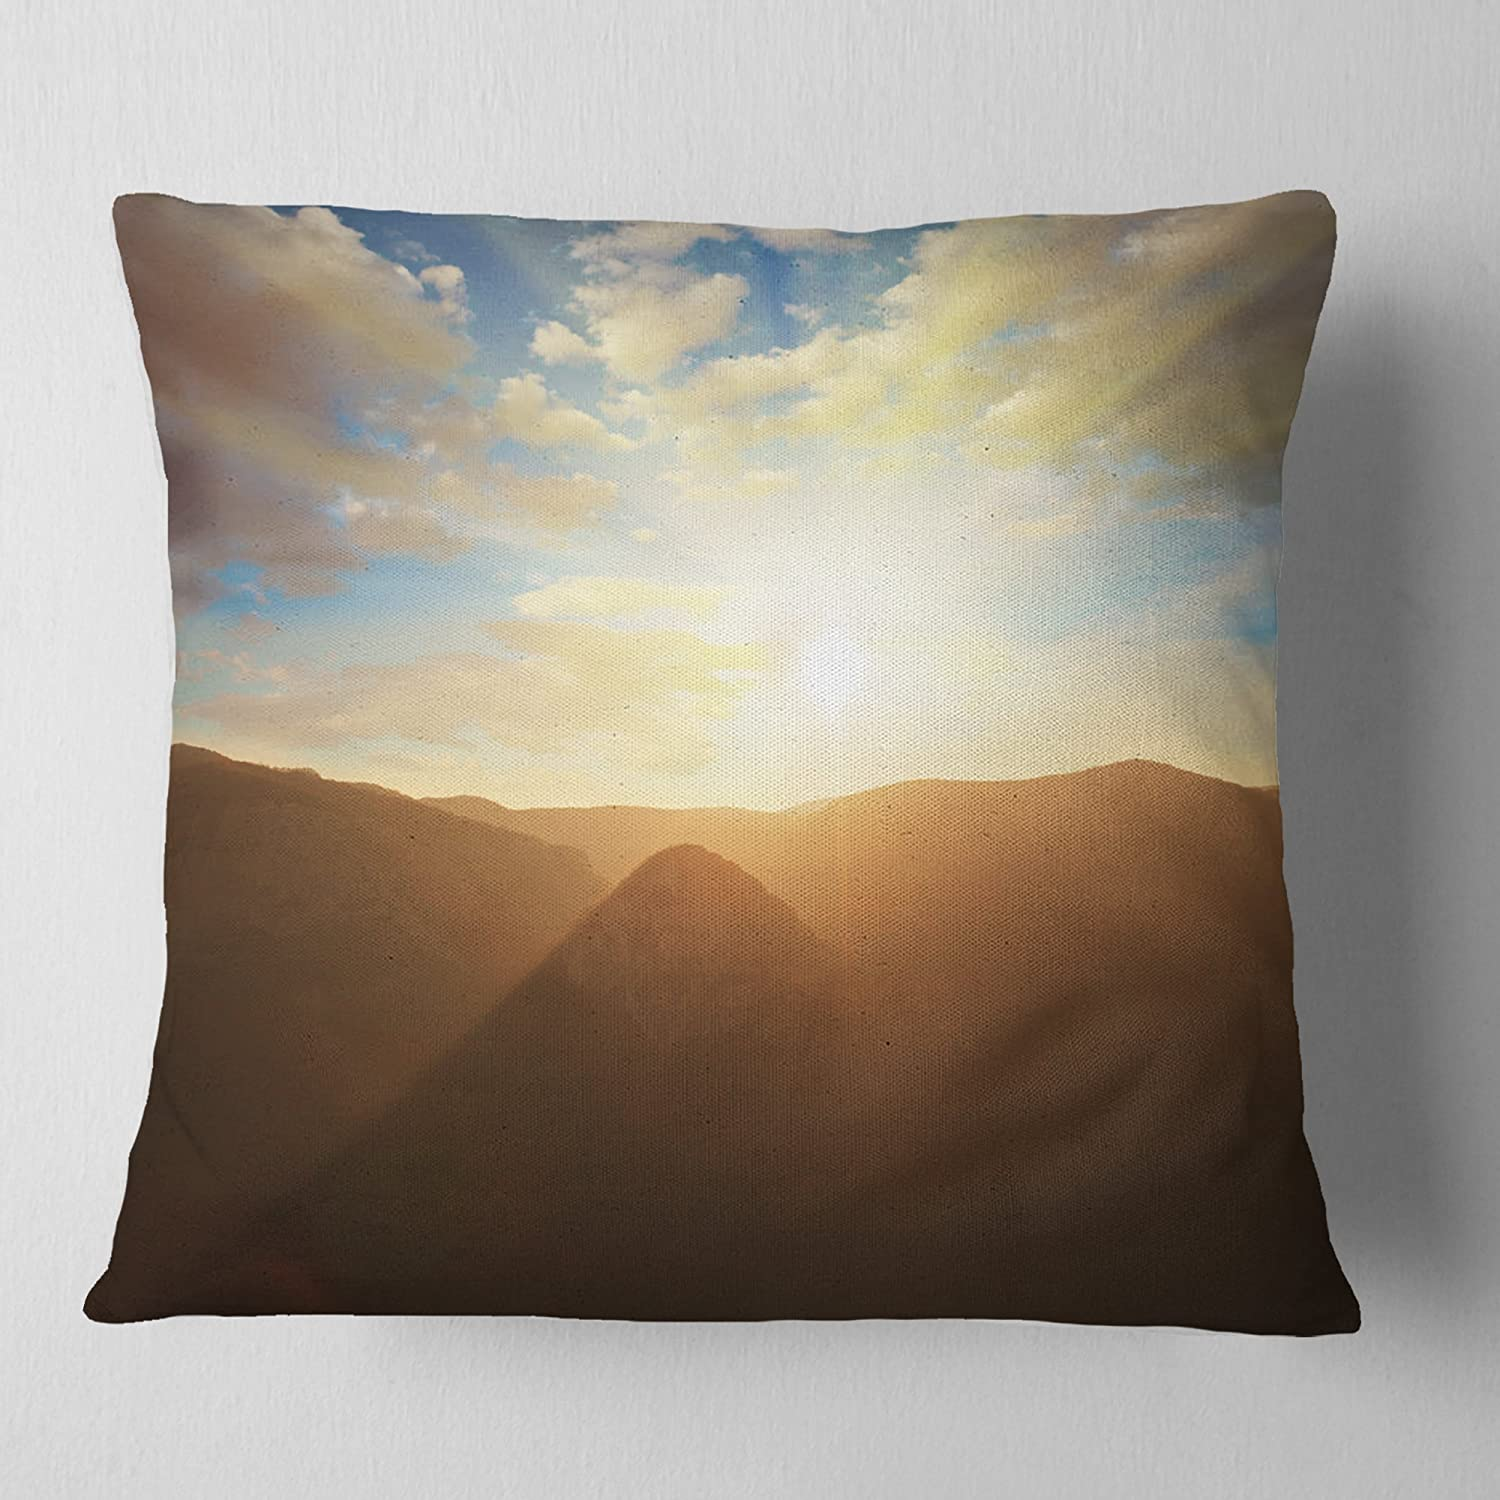 in Sofa Throw Pillow 26 in Designart CU12761-26-26 Sunset Over Gloomy Mountains African Landscape Printed Cushion Cover for Living Room x 26 in Insert Side